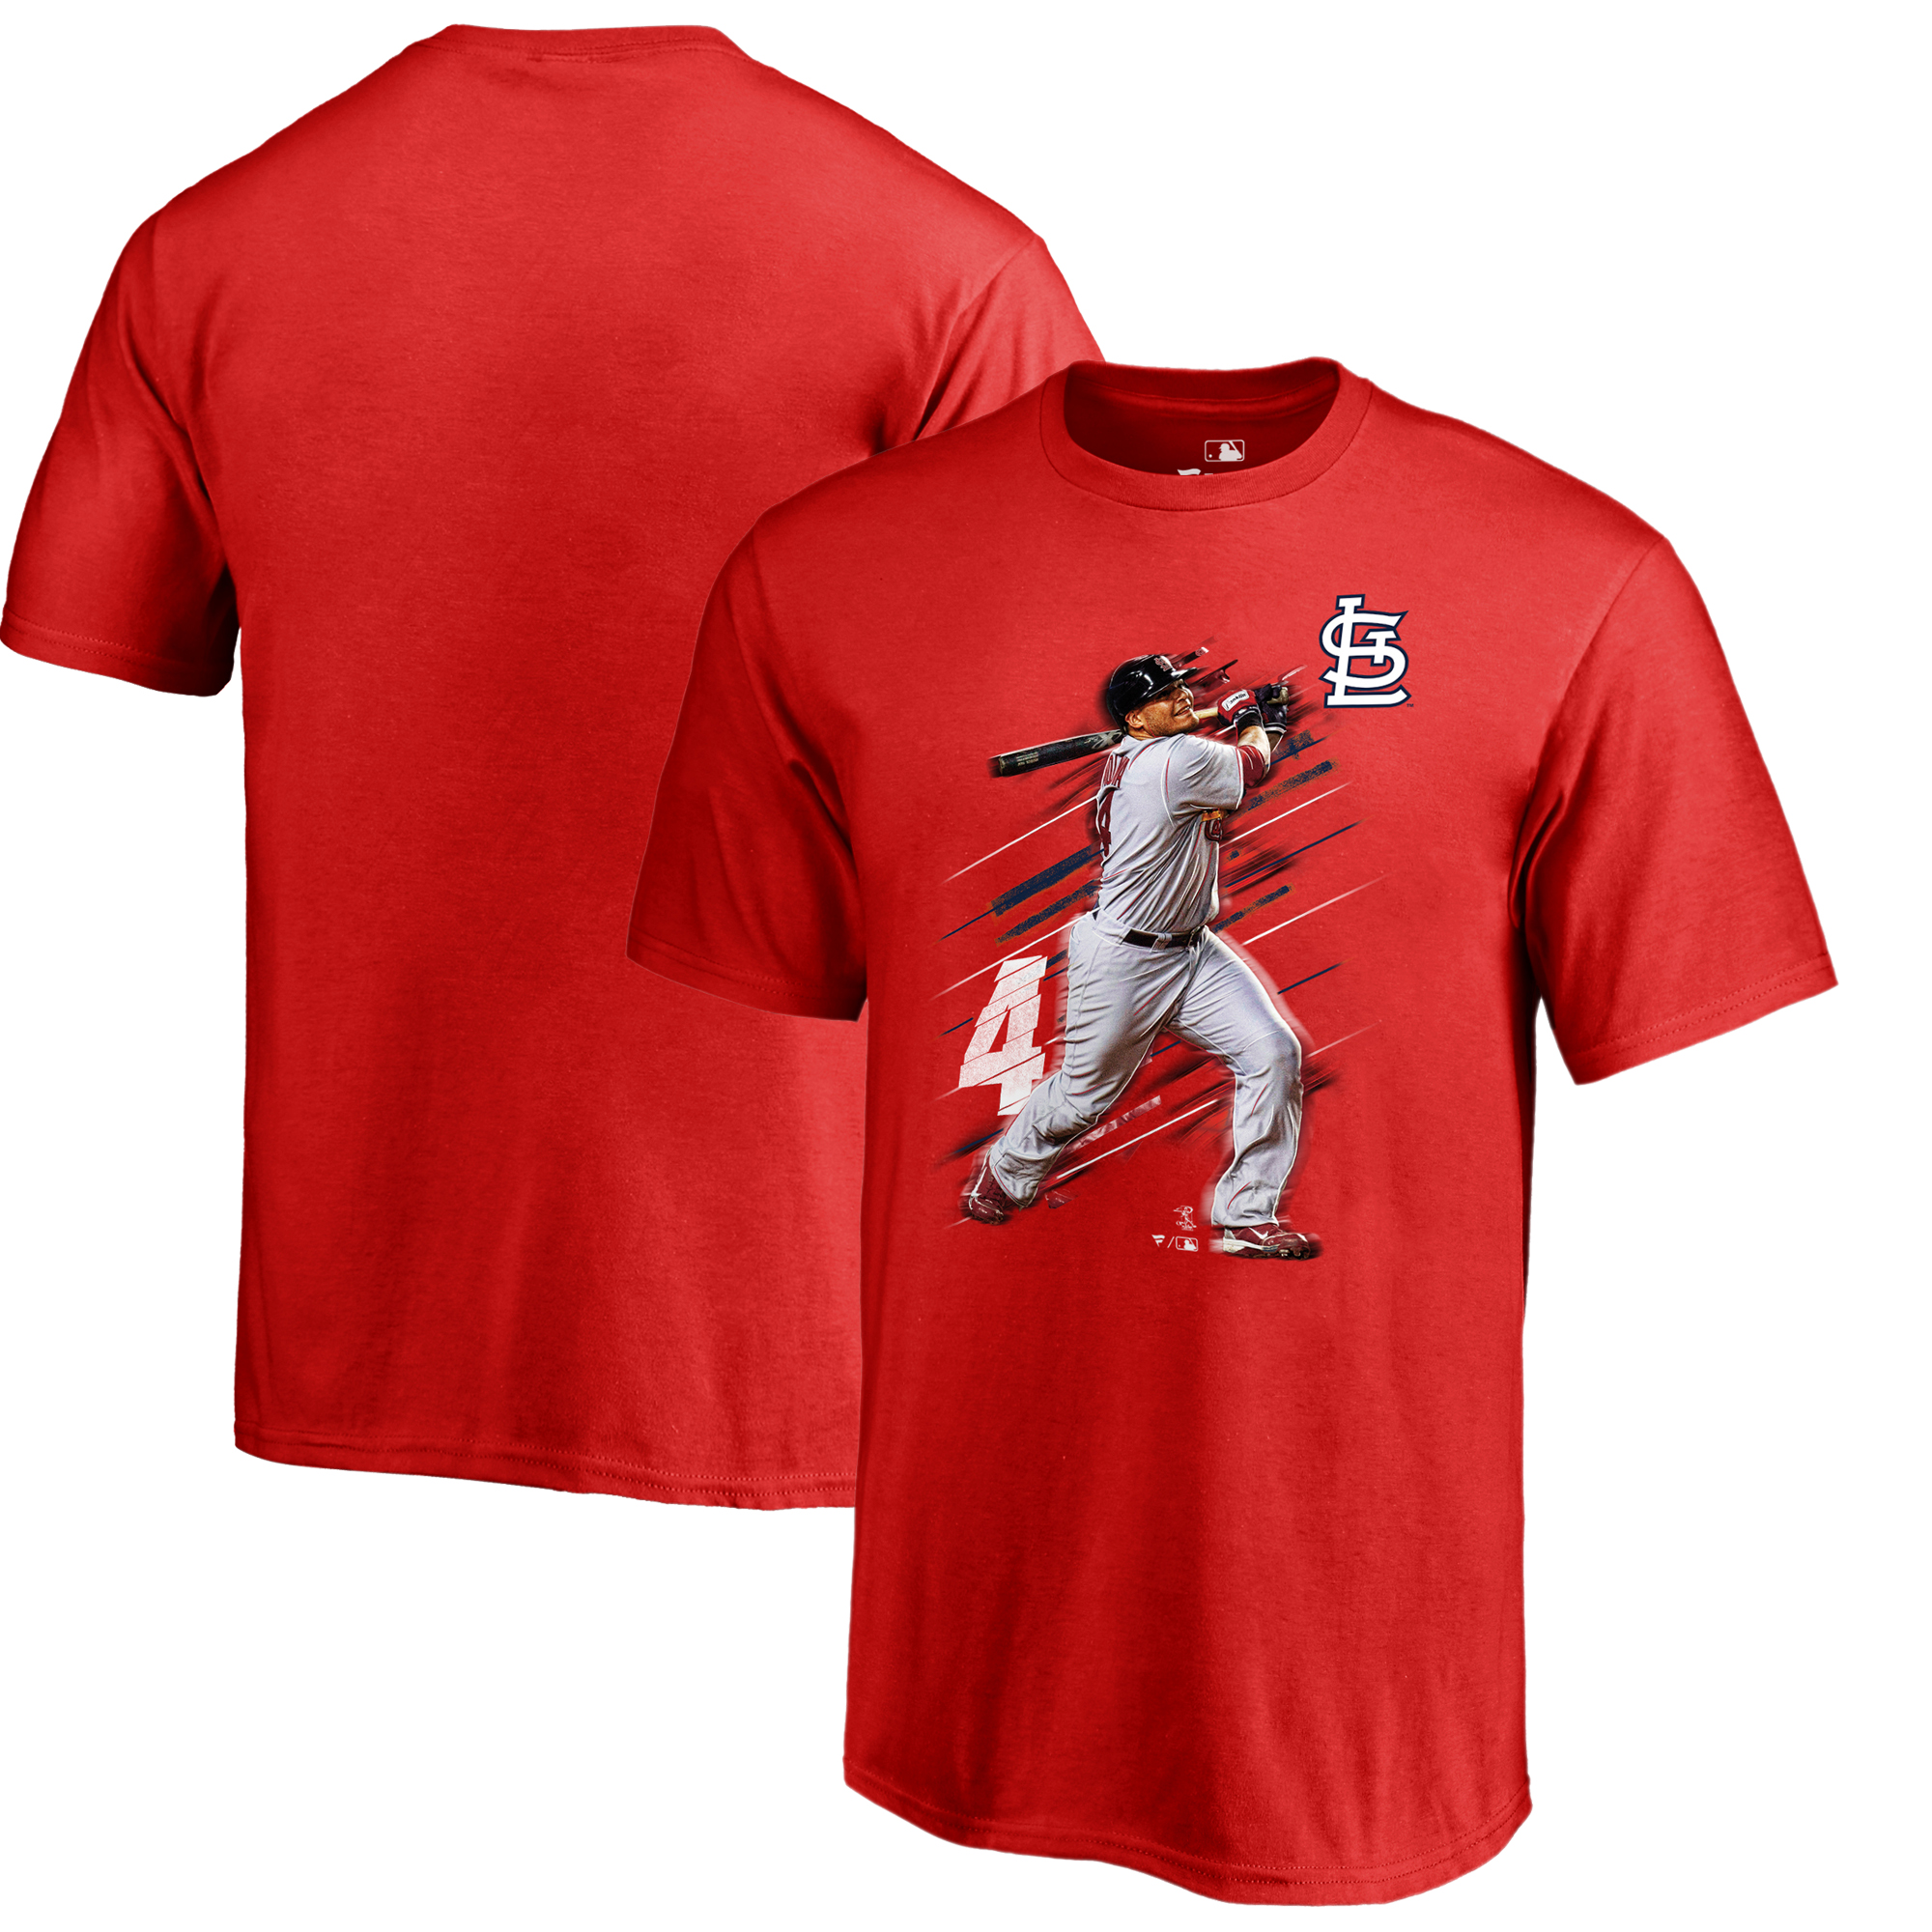 Yadier Molina St. Louis Cardinals Fanatics Branded Youth Fade Away T-Shirt - Red